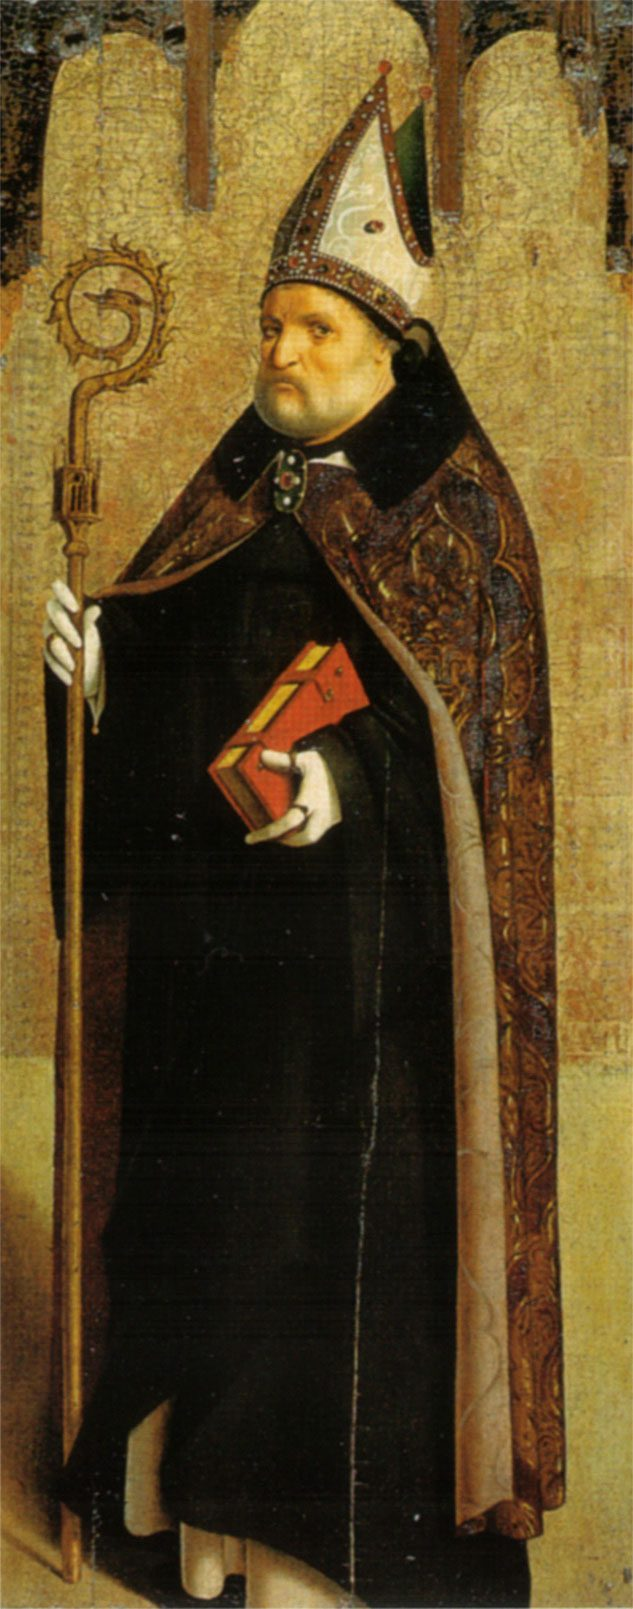 San Benedetto (di Antonello da Messina)